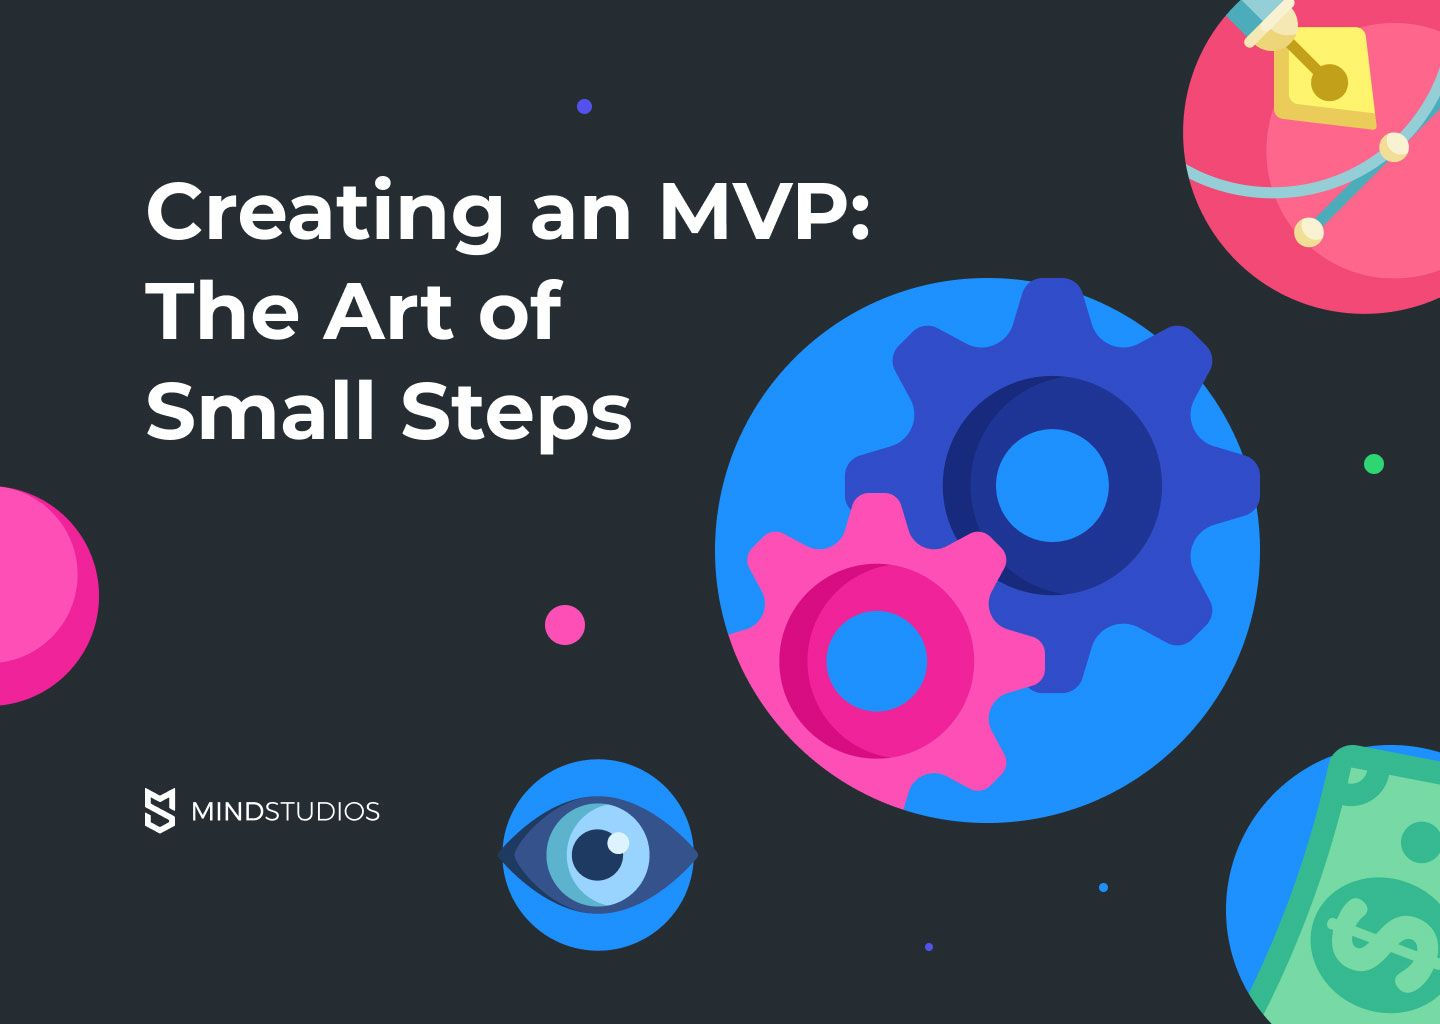 Creating an MVP: The Art of Small Steps